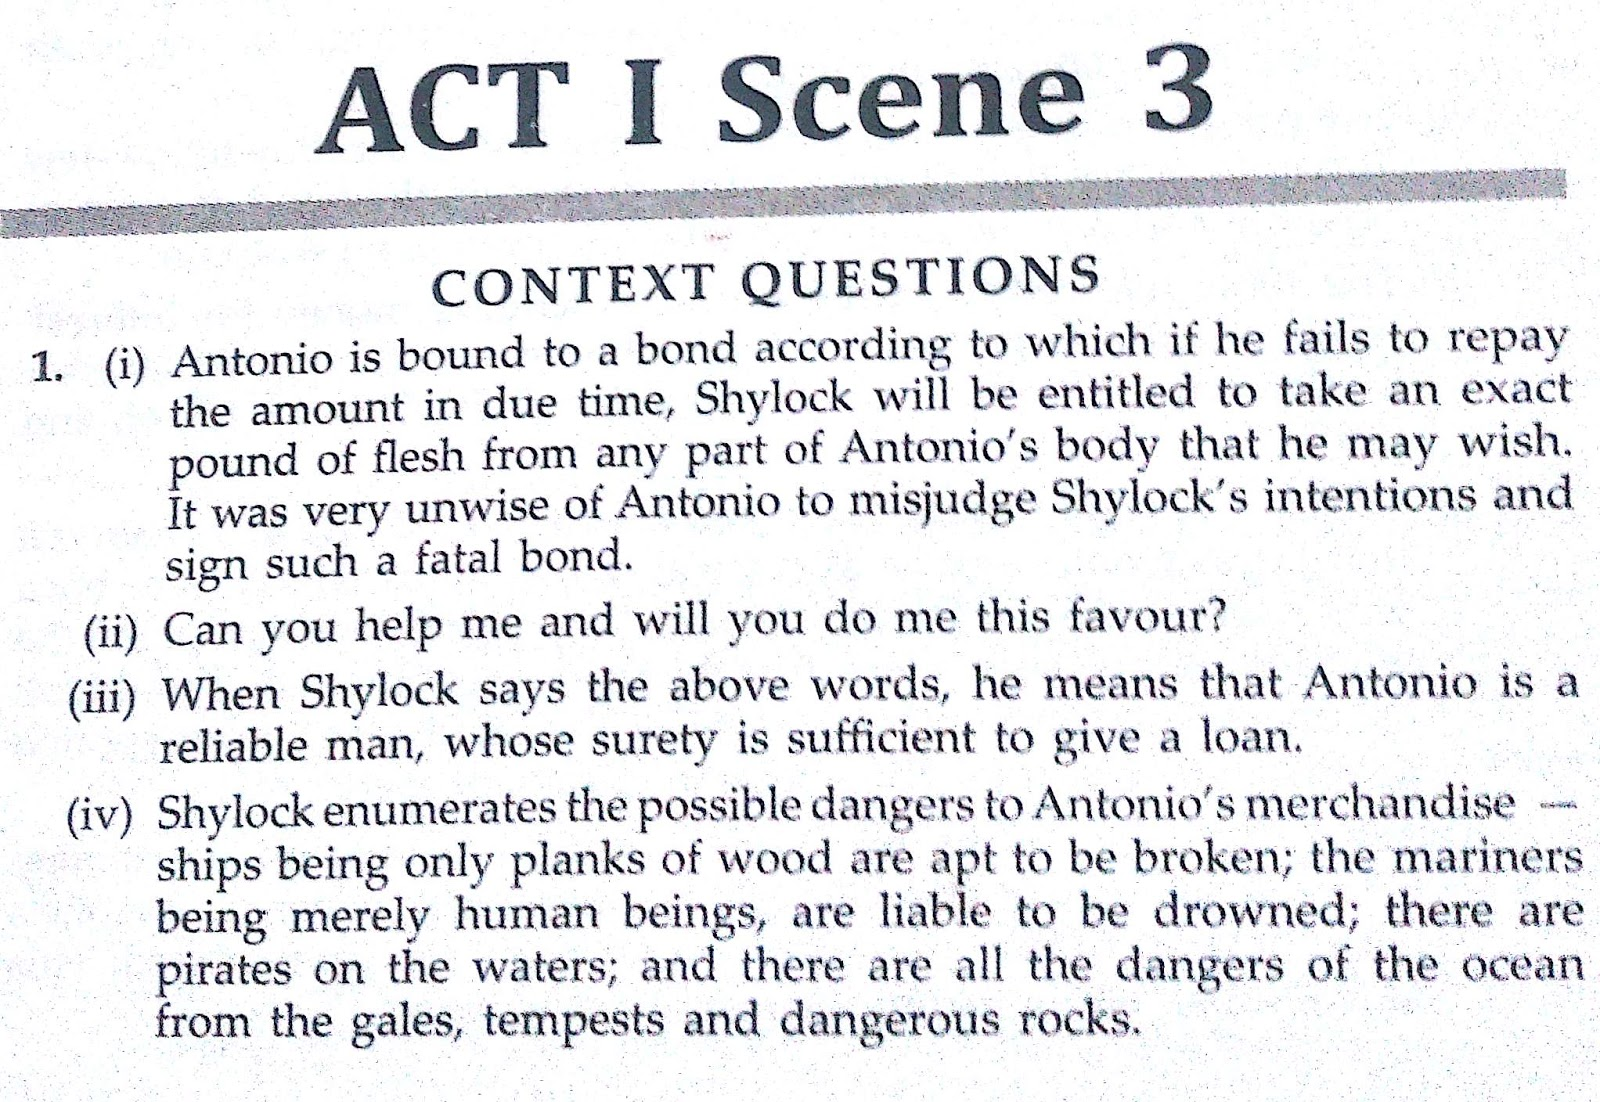 the merchant of venice act 1 This page contains the original text of act 3, scene 1 of the merchant of venice: enter salanio and salarino salanio: now, what news on the rialto salarino: why, yet it lives there uncheck'd that antonio hath.